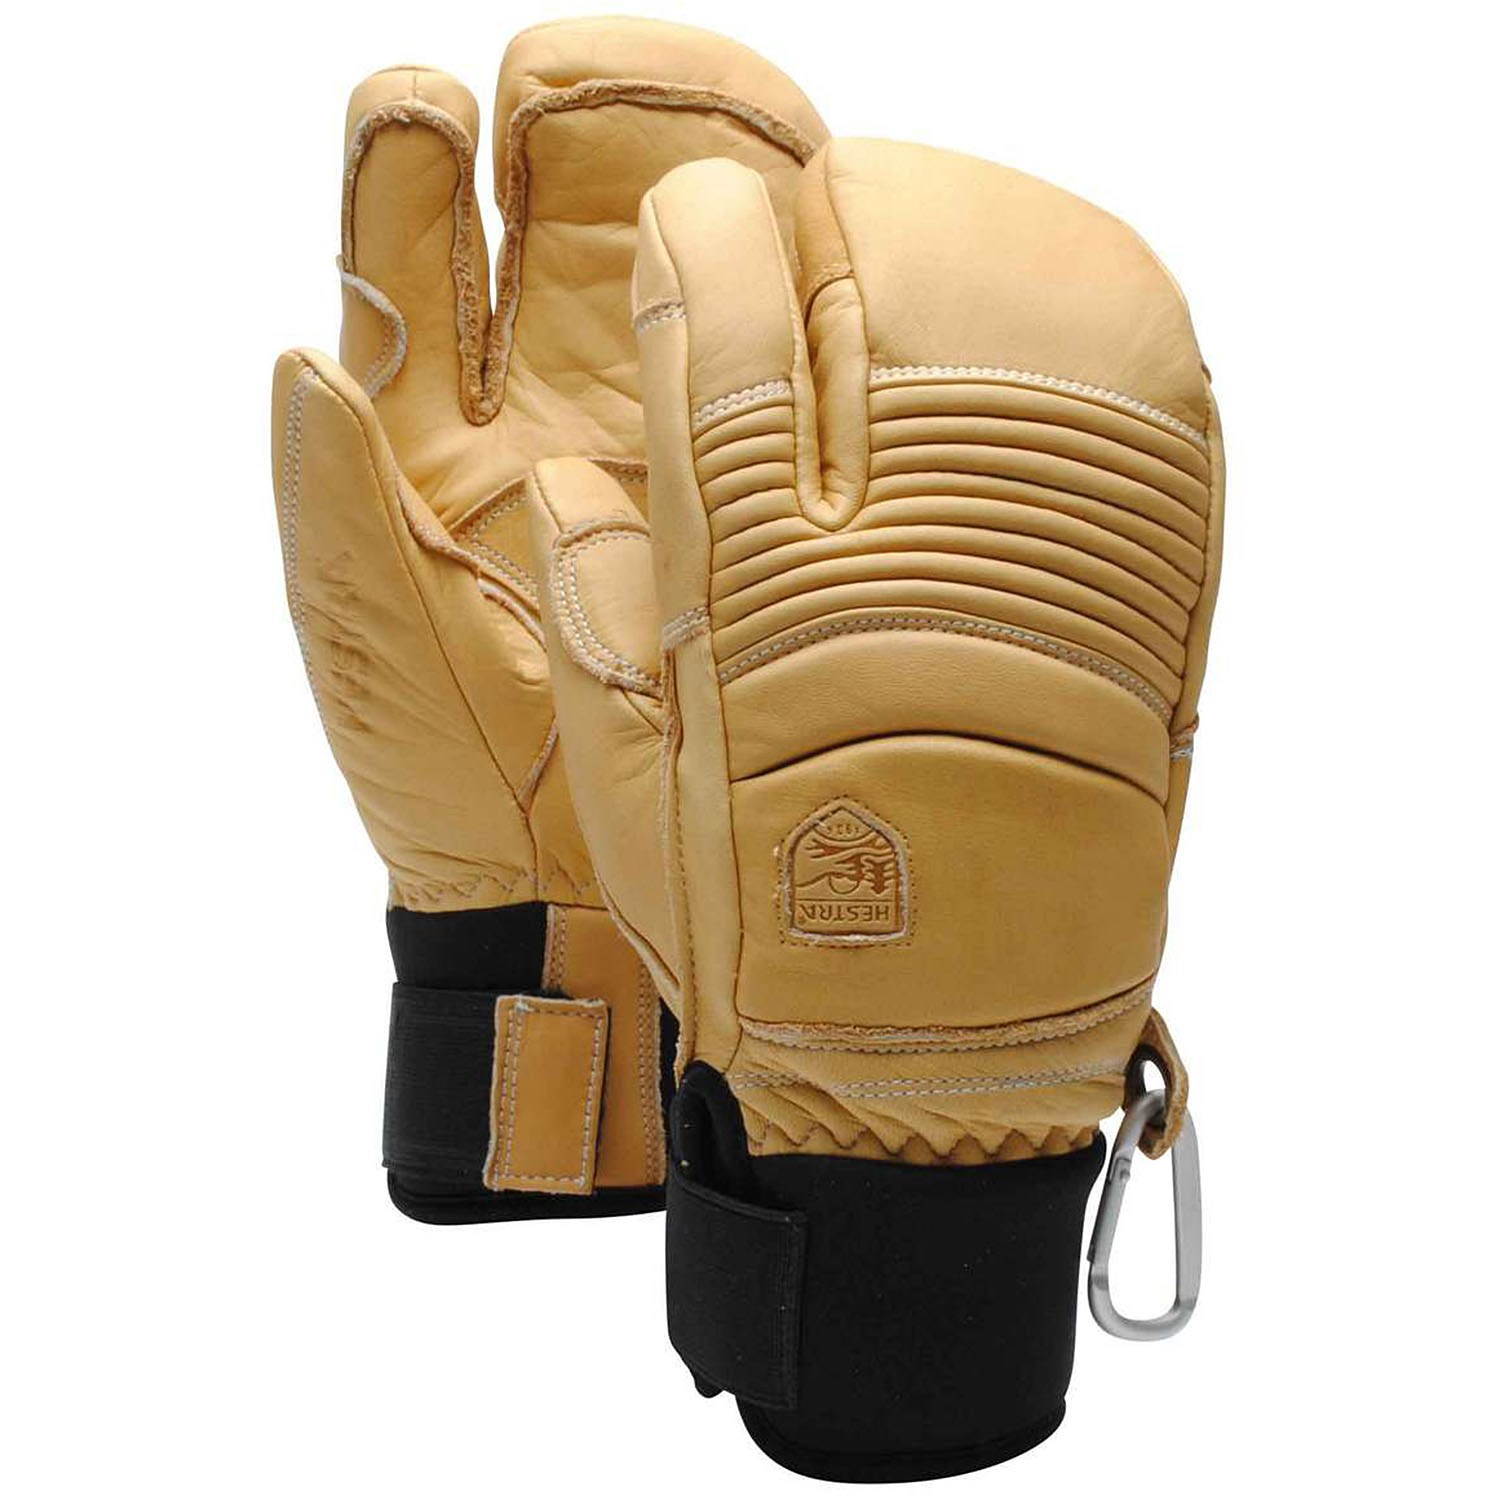 Hestra mens gloves - Hestra Mens Gloves 18